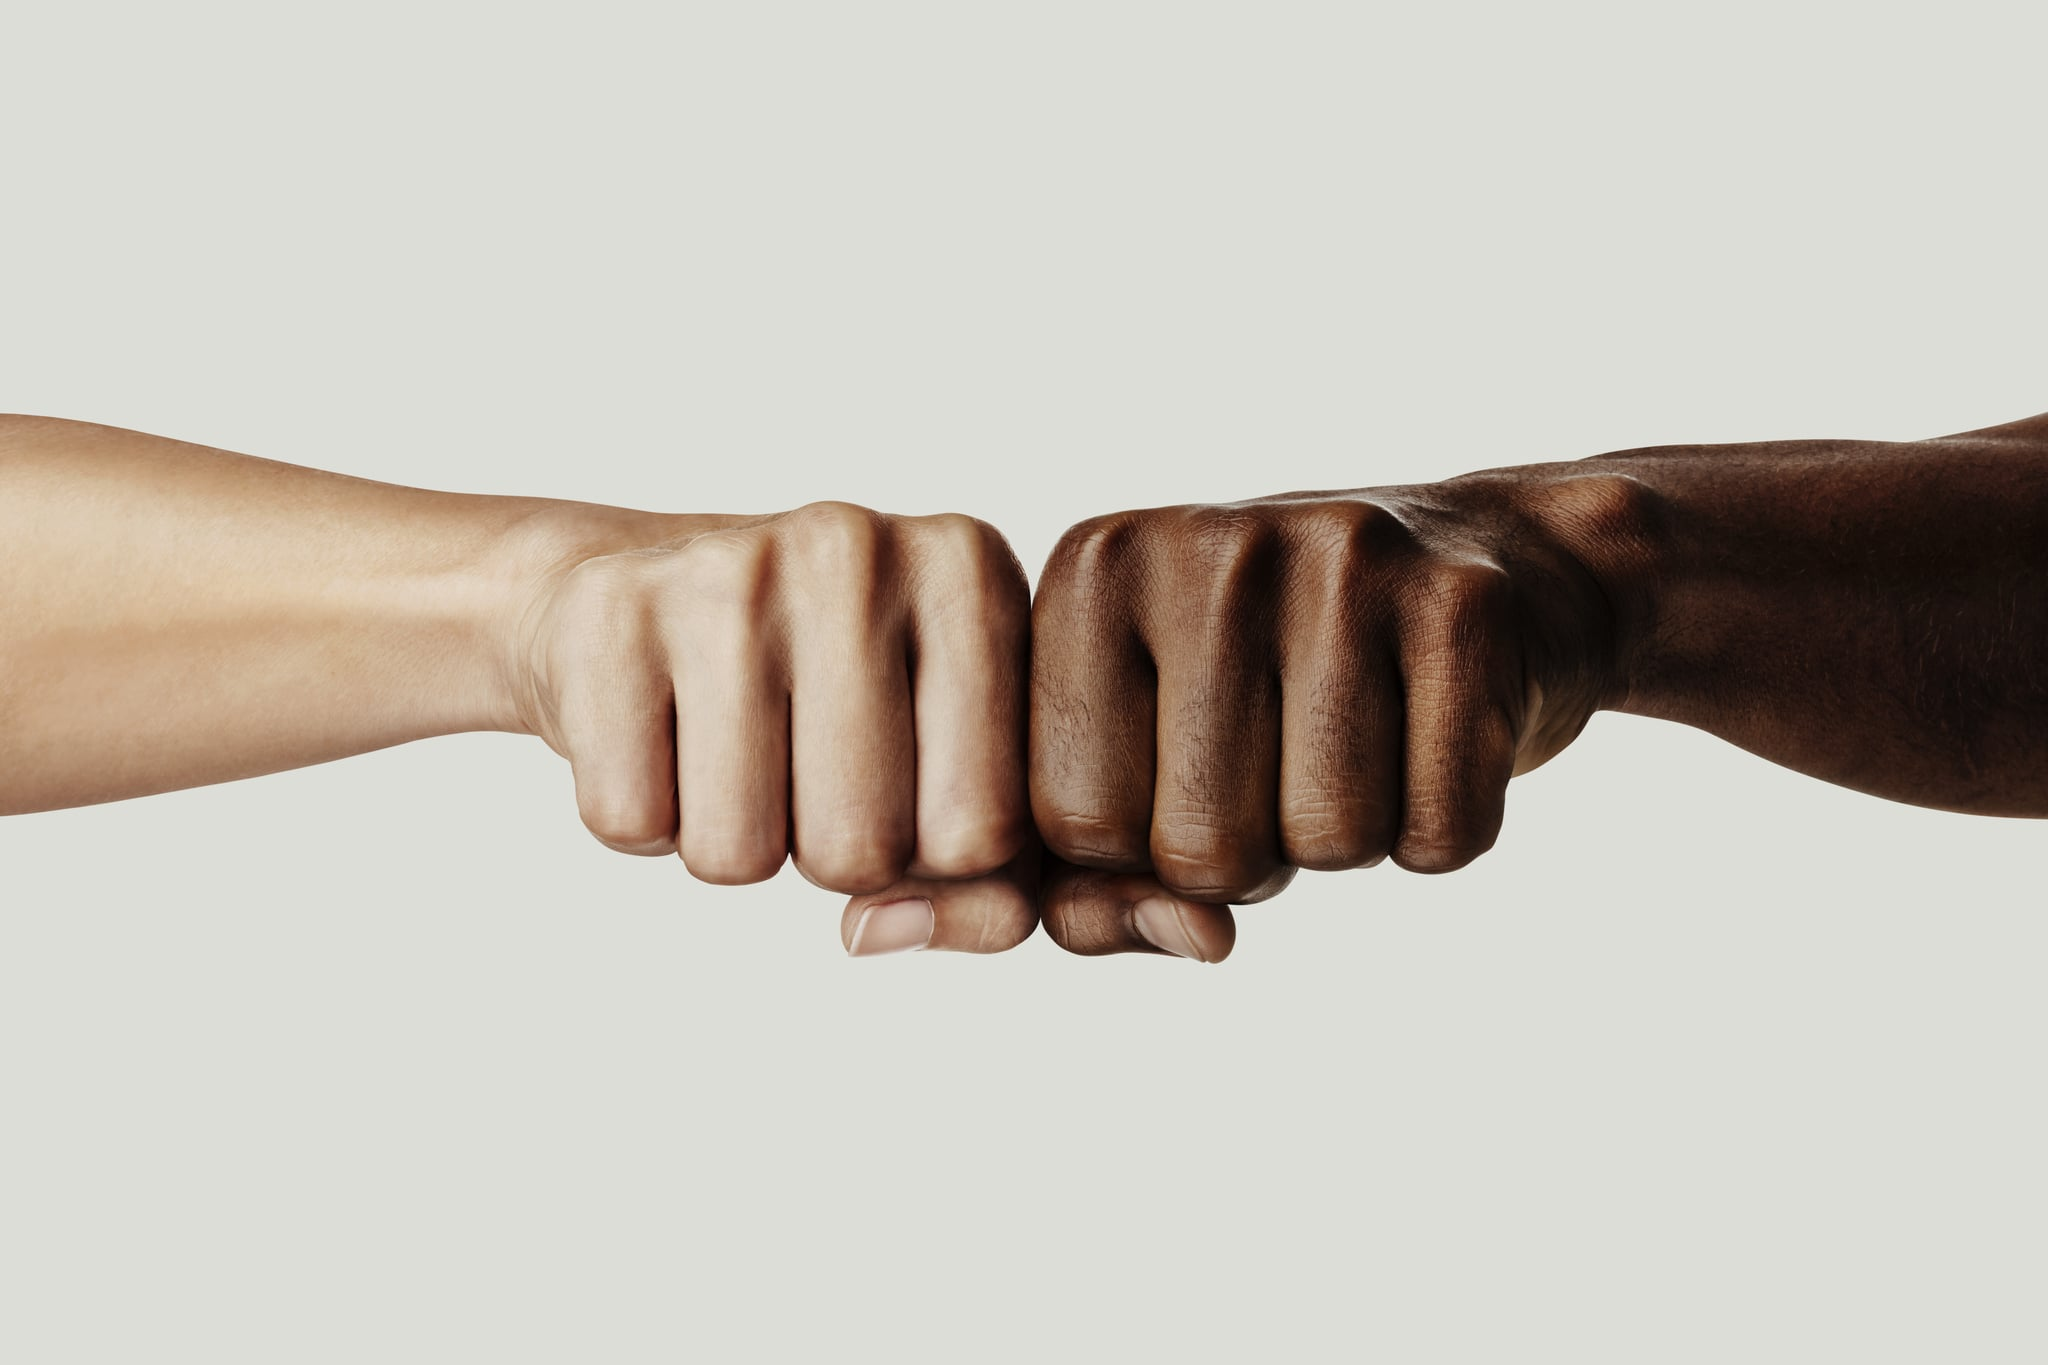 Black Lives Matter, two interracial fists, Punch